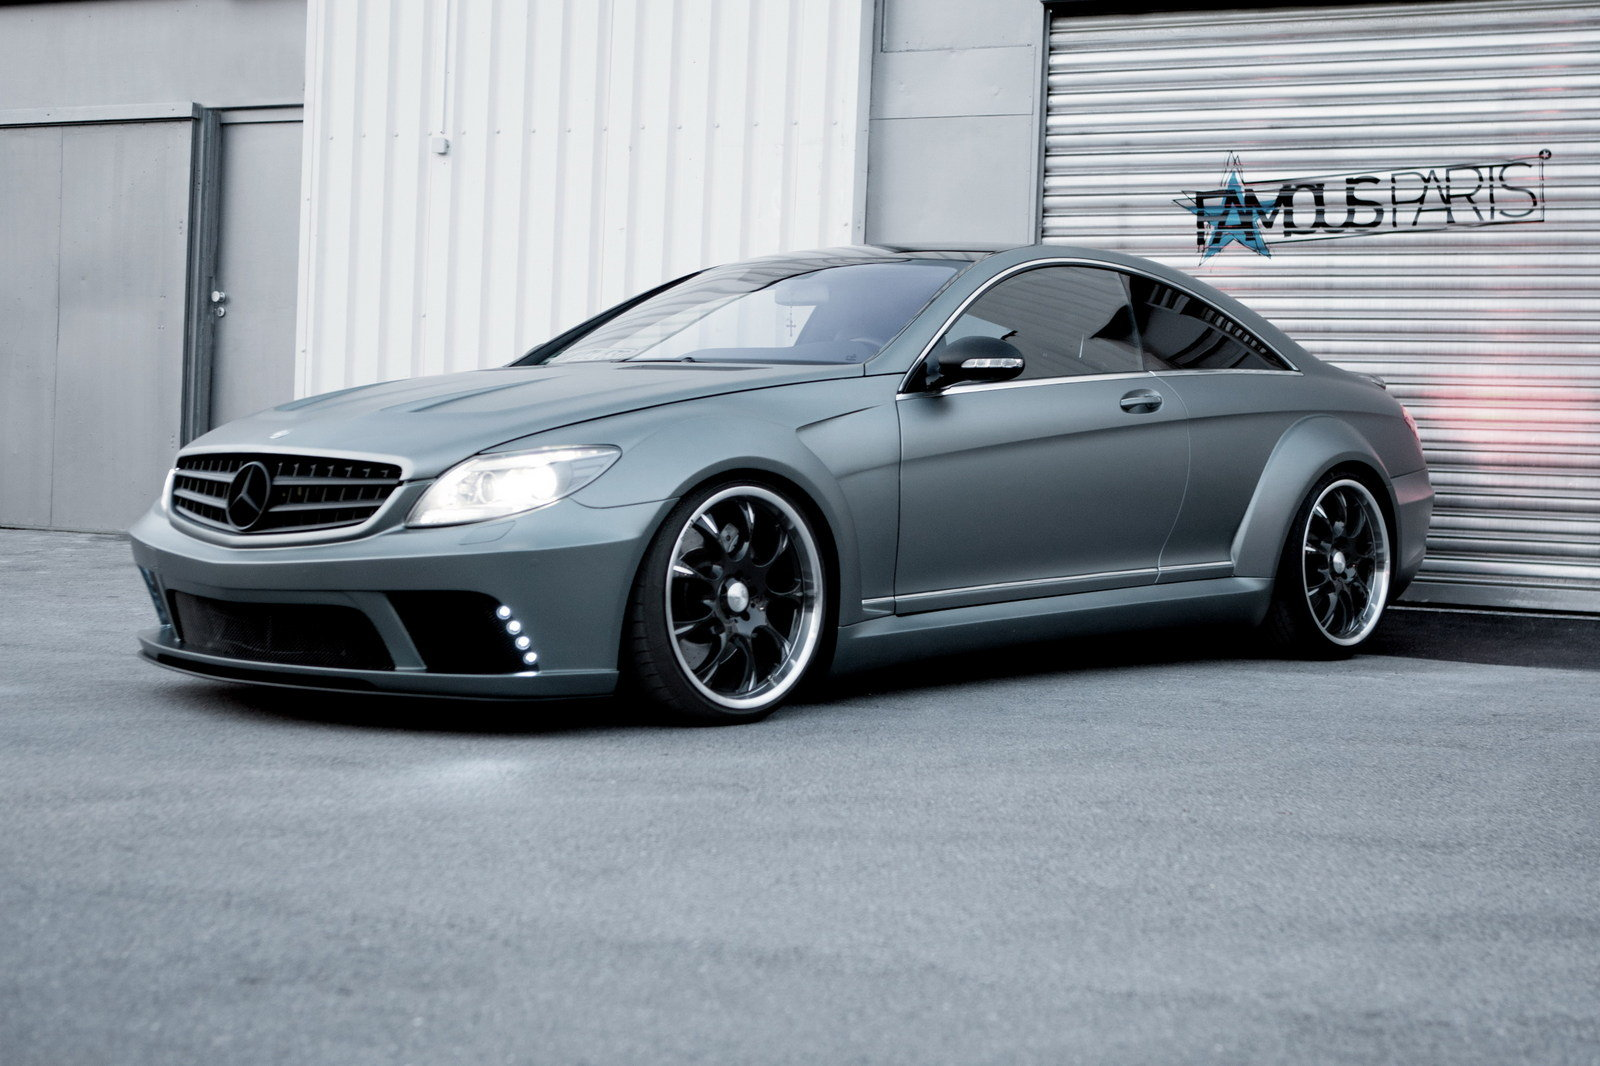 2013 mercedes benz cl63 amg by famous parts picture for Mercedes benz spare parts price list